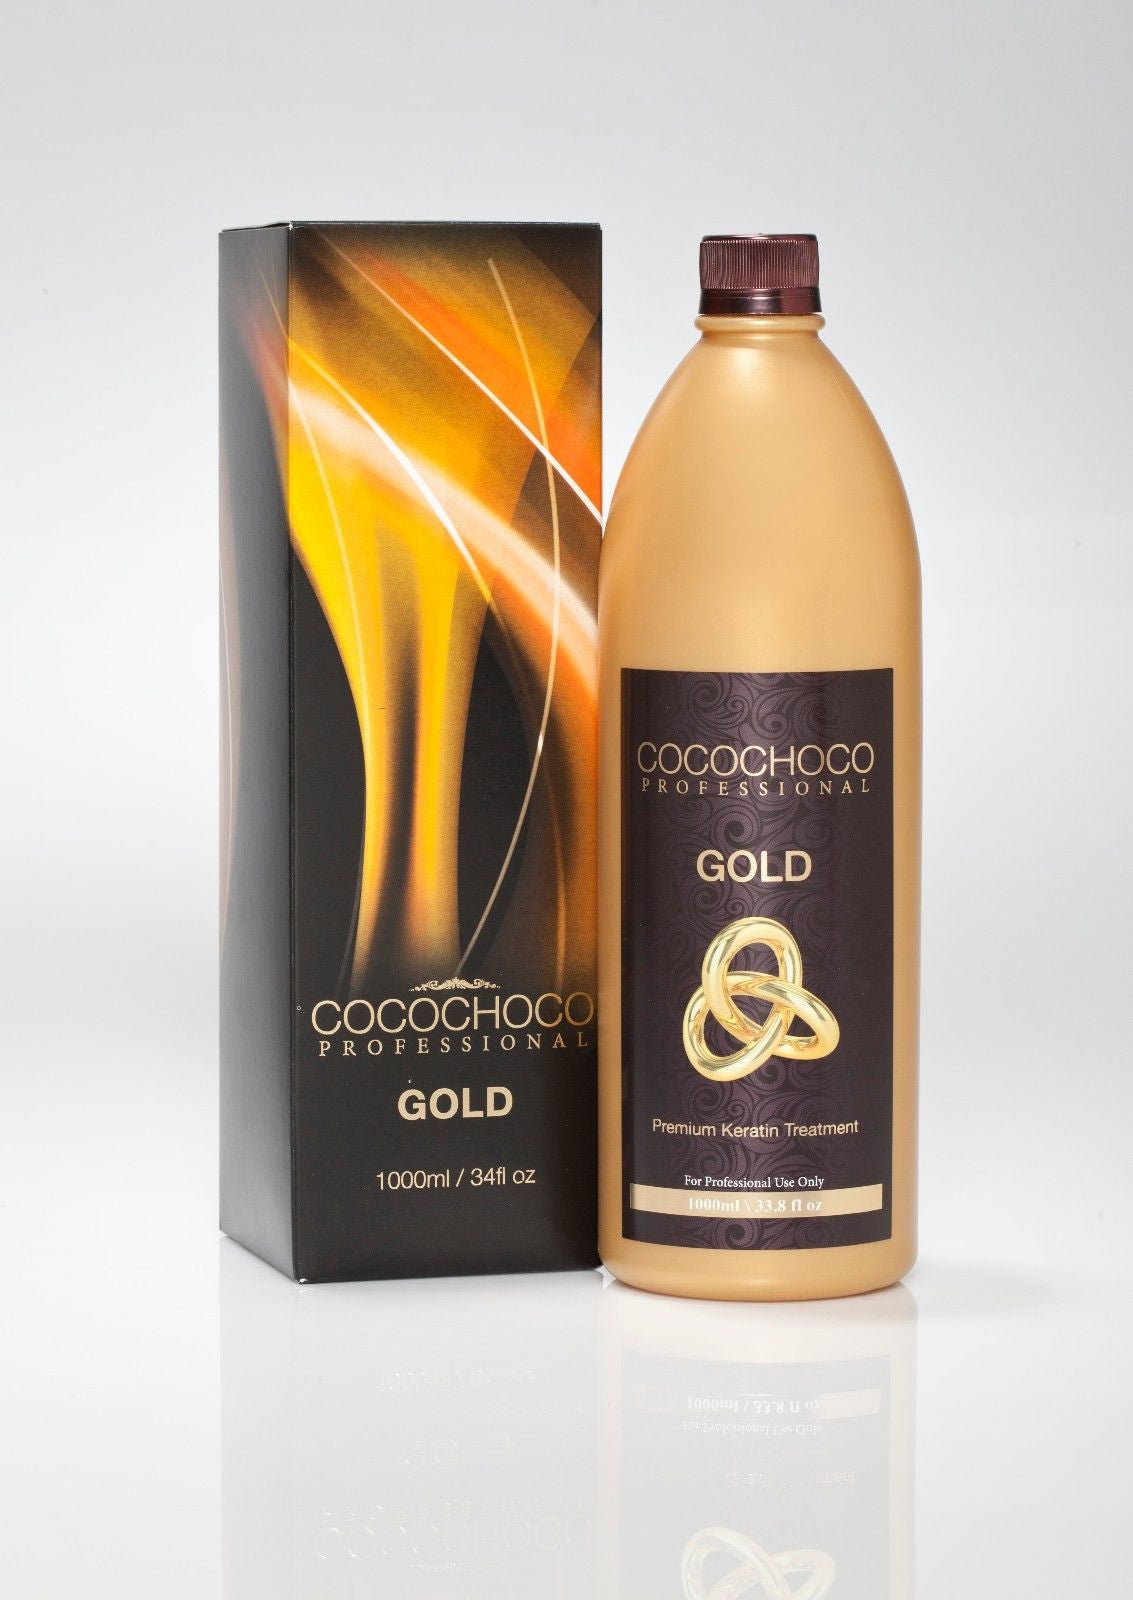 COCOCHOCO PROFESSIONAL GOLD 1000ml